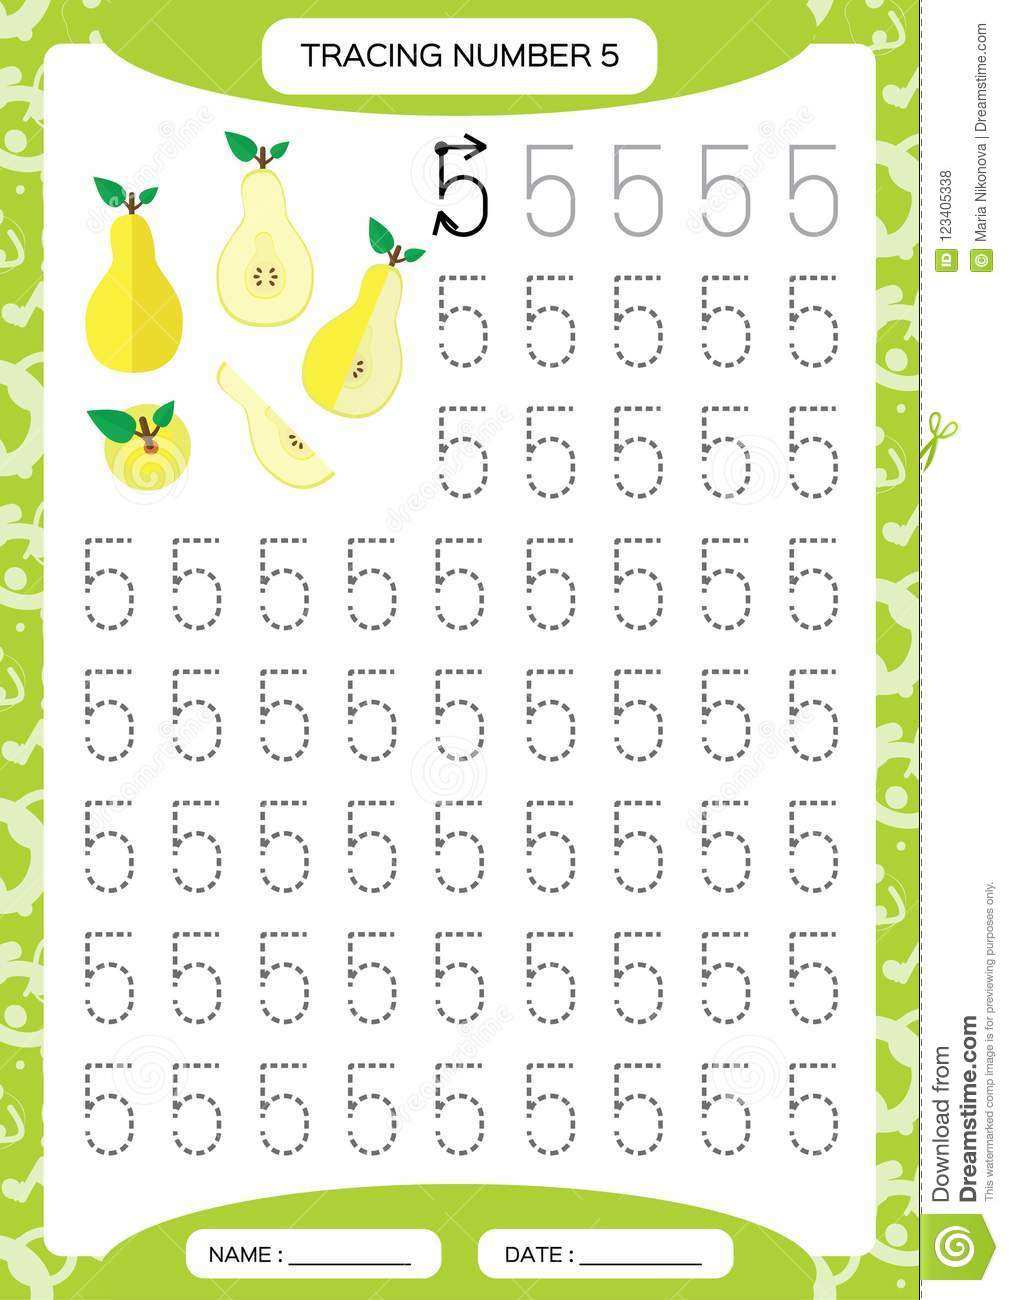 Yellow Worksheets for Preschool Number 5 Five Tracing Worksheet for Kids Yellow Juicy